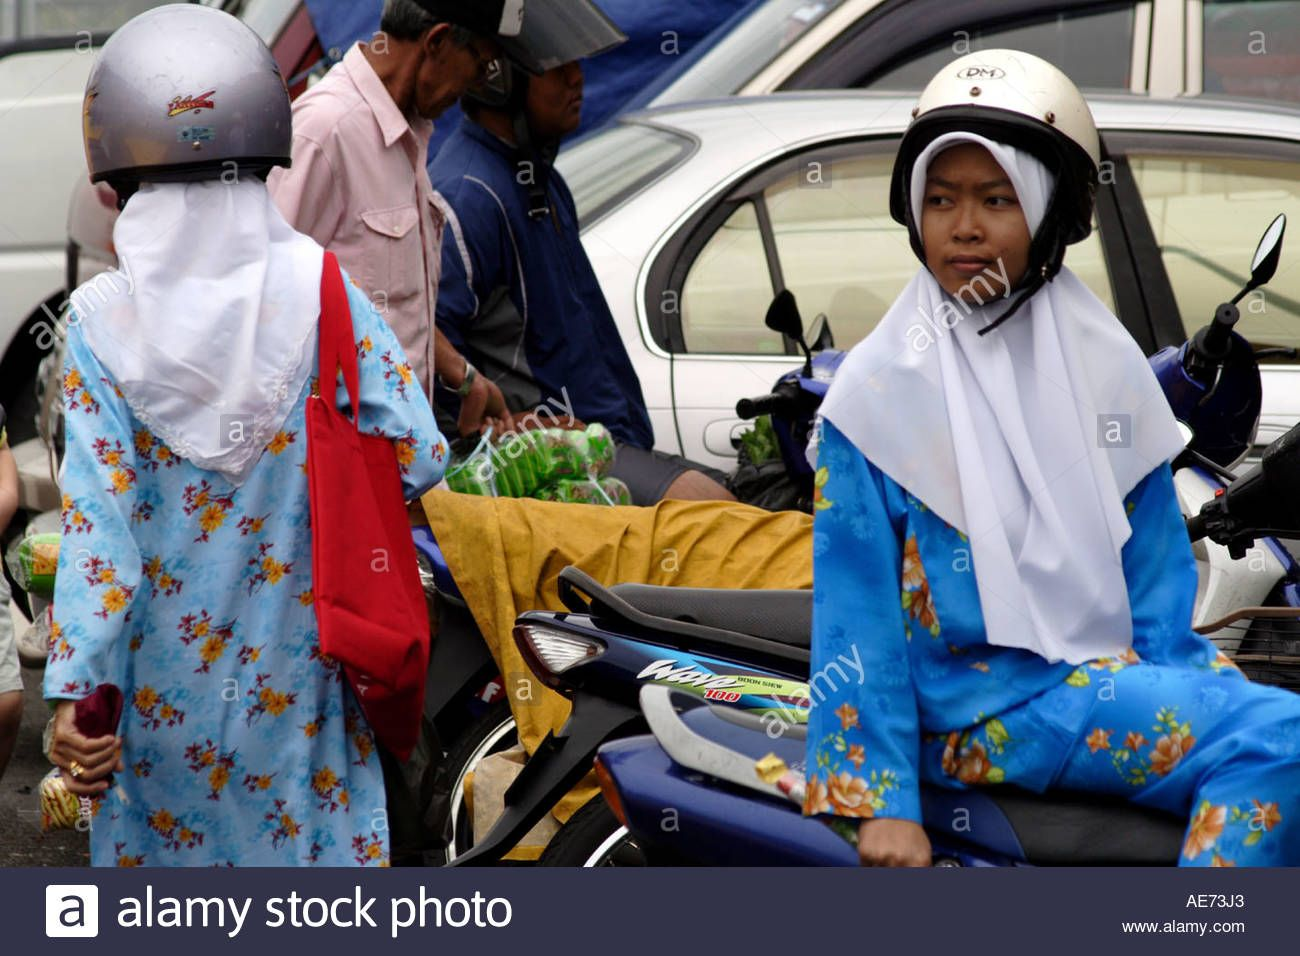 Stock Photo Muslim Women With Motorcycle Helmets Over Traditional Head Cover Outside The Market Kuc Muslim Women Motorcycle Helmets Cool Motorcycle Helmets